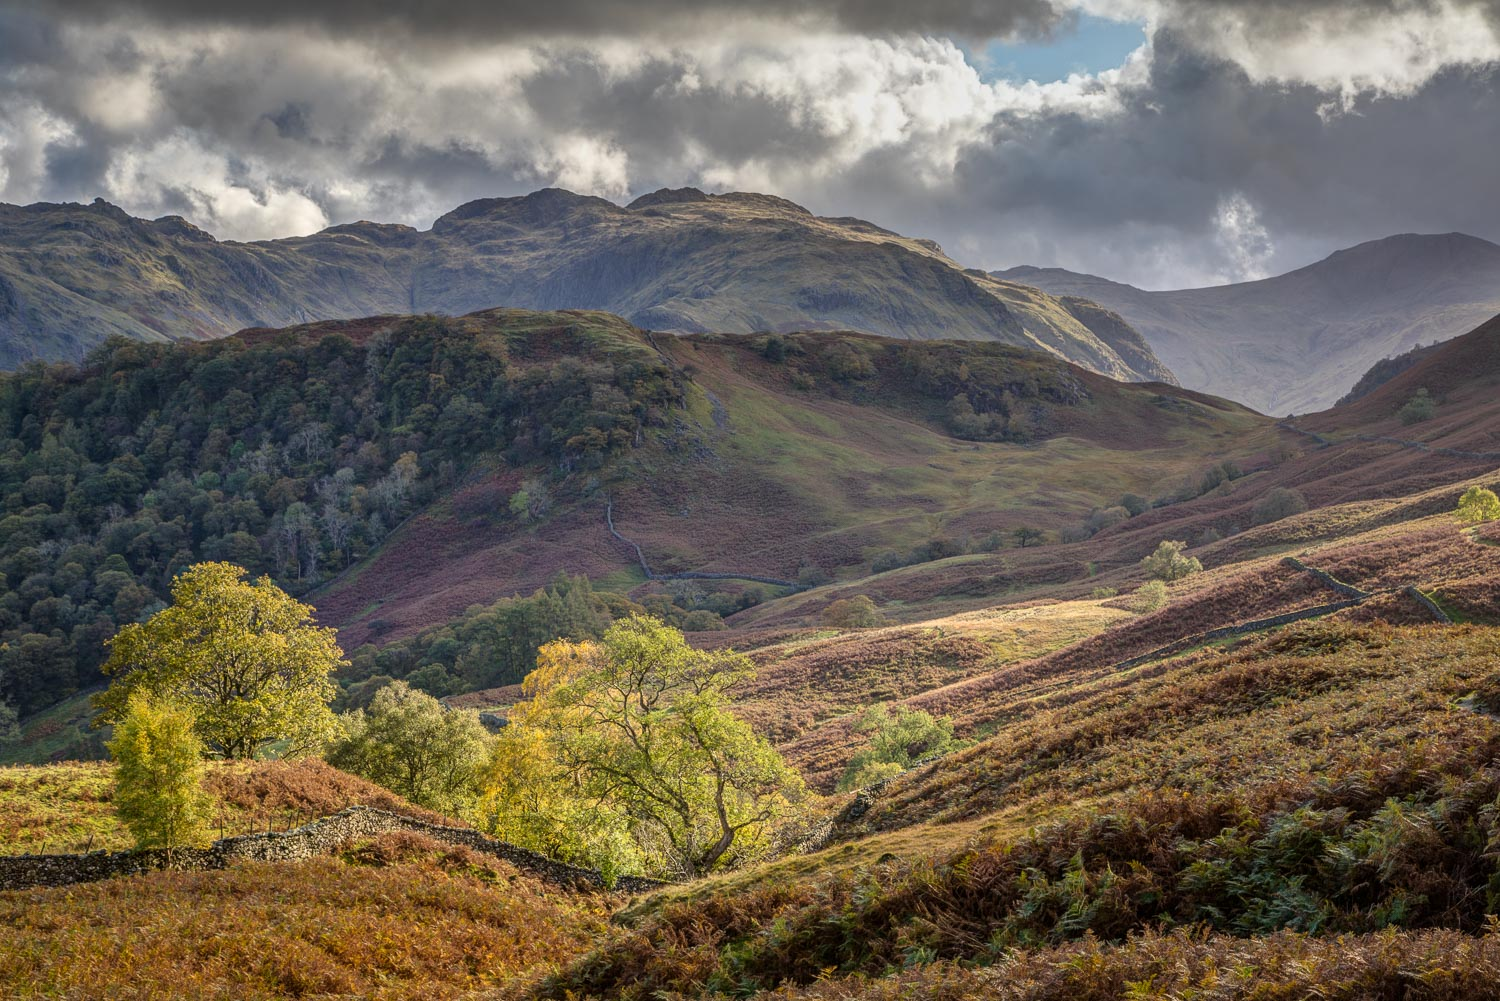 Borrowdale fells, High Doat